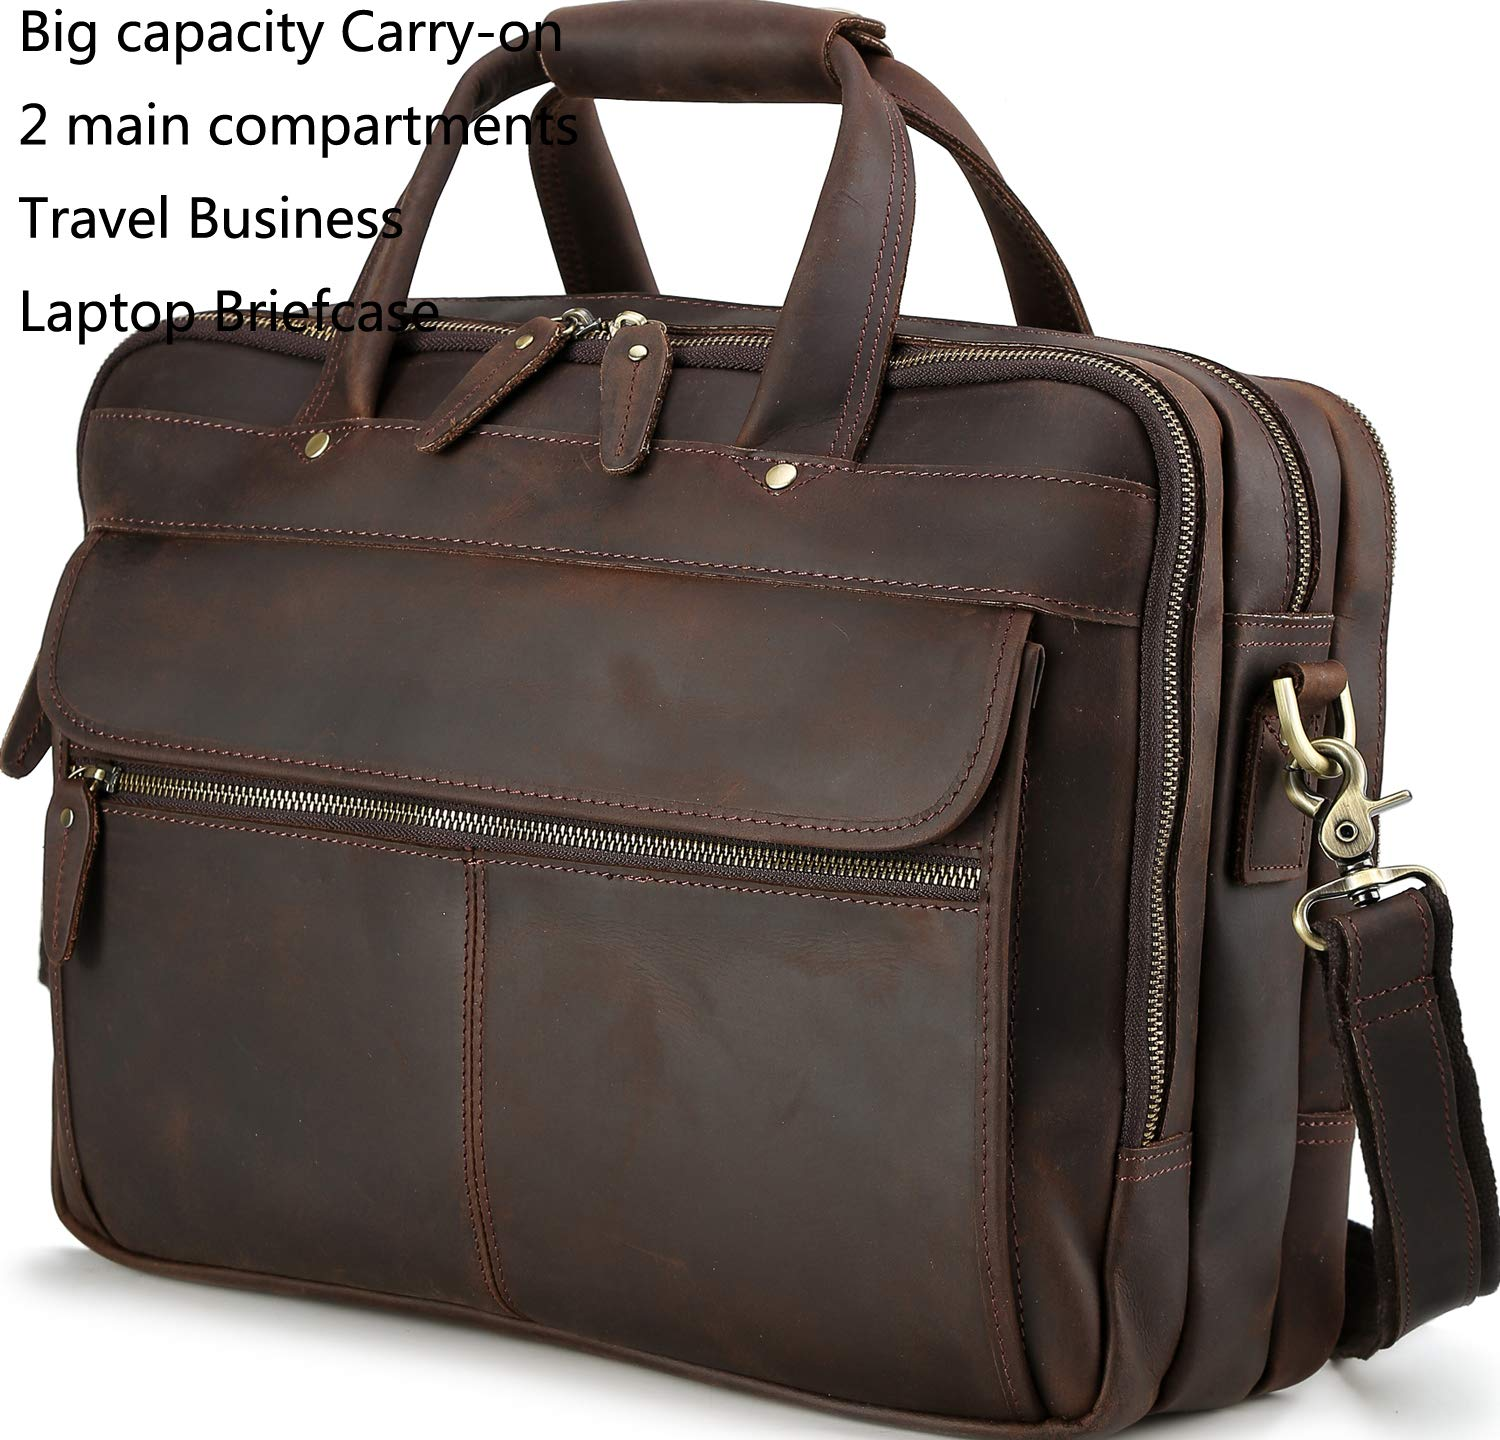 57e3b1d576d5 Iswee Men Vintage Thick Leather Travel Carry-on Big Capacity Business Trip  Laptop Briefcase